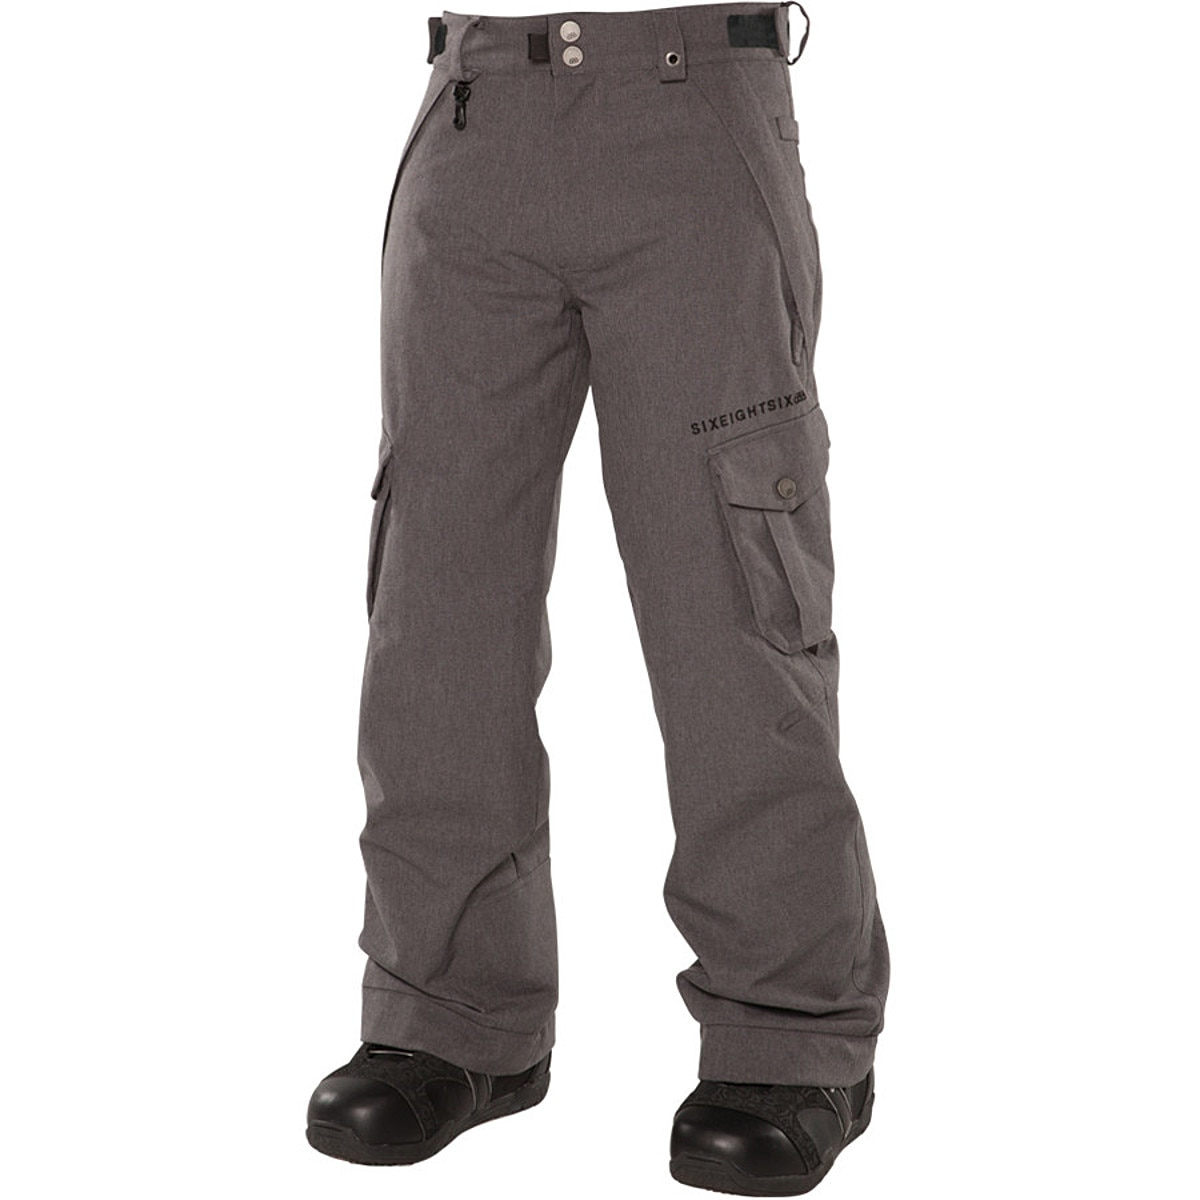 Image of 686 Smarty Original Cargo Insulated 3-in-1 Pant - Boys'